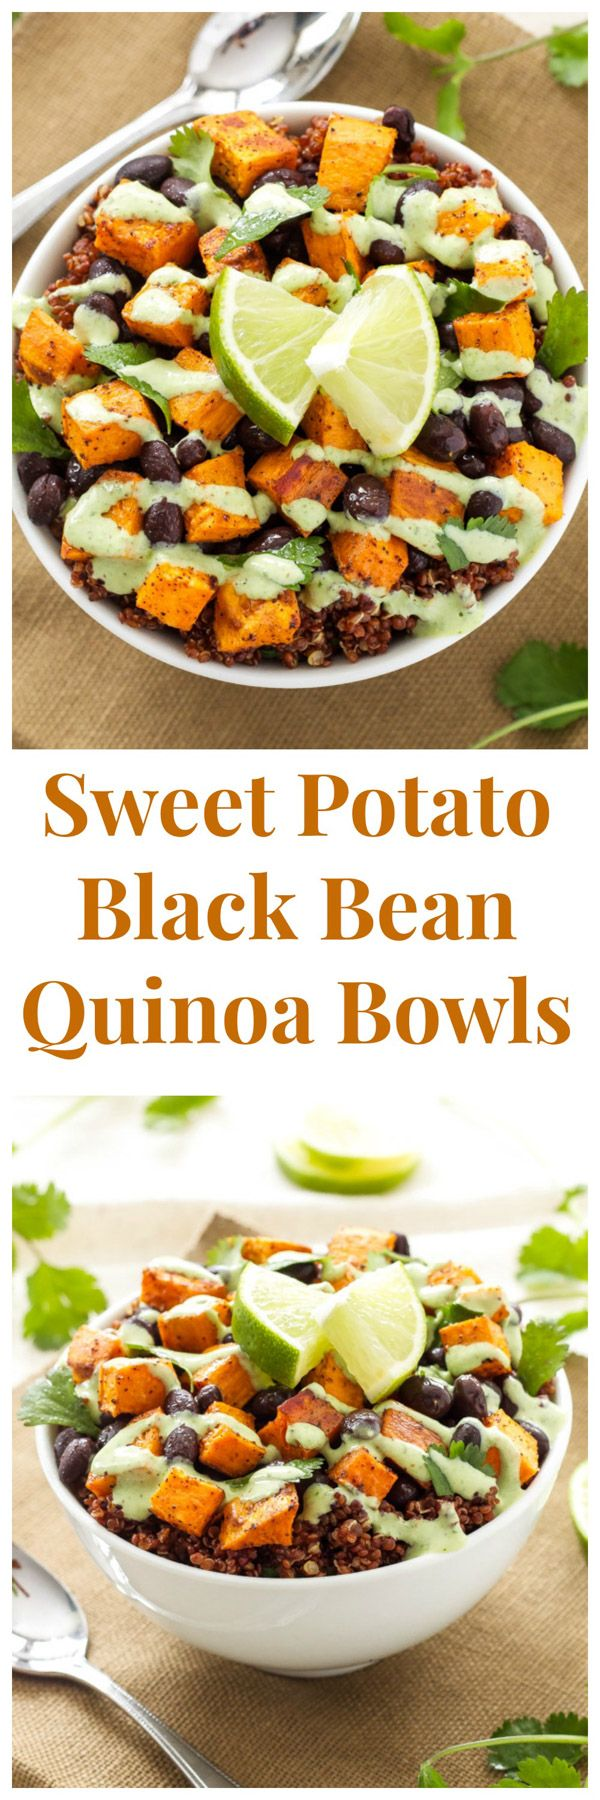 Sweet Potato and Black Bean Quinoa Bowls - a healthy and delicious meal!